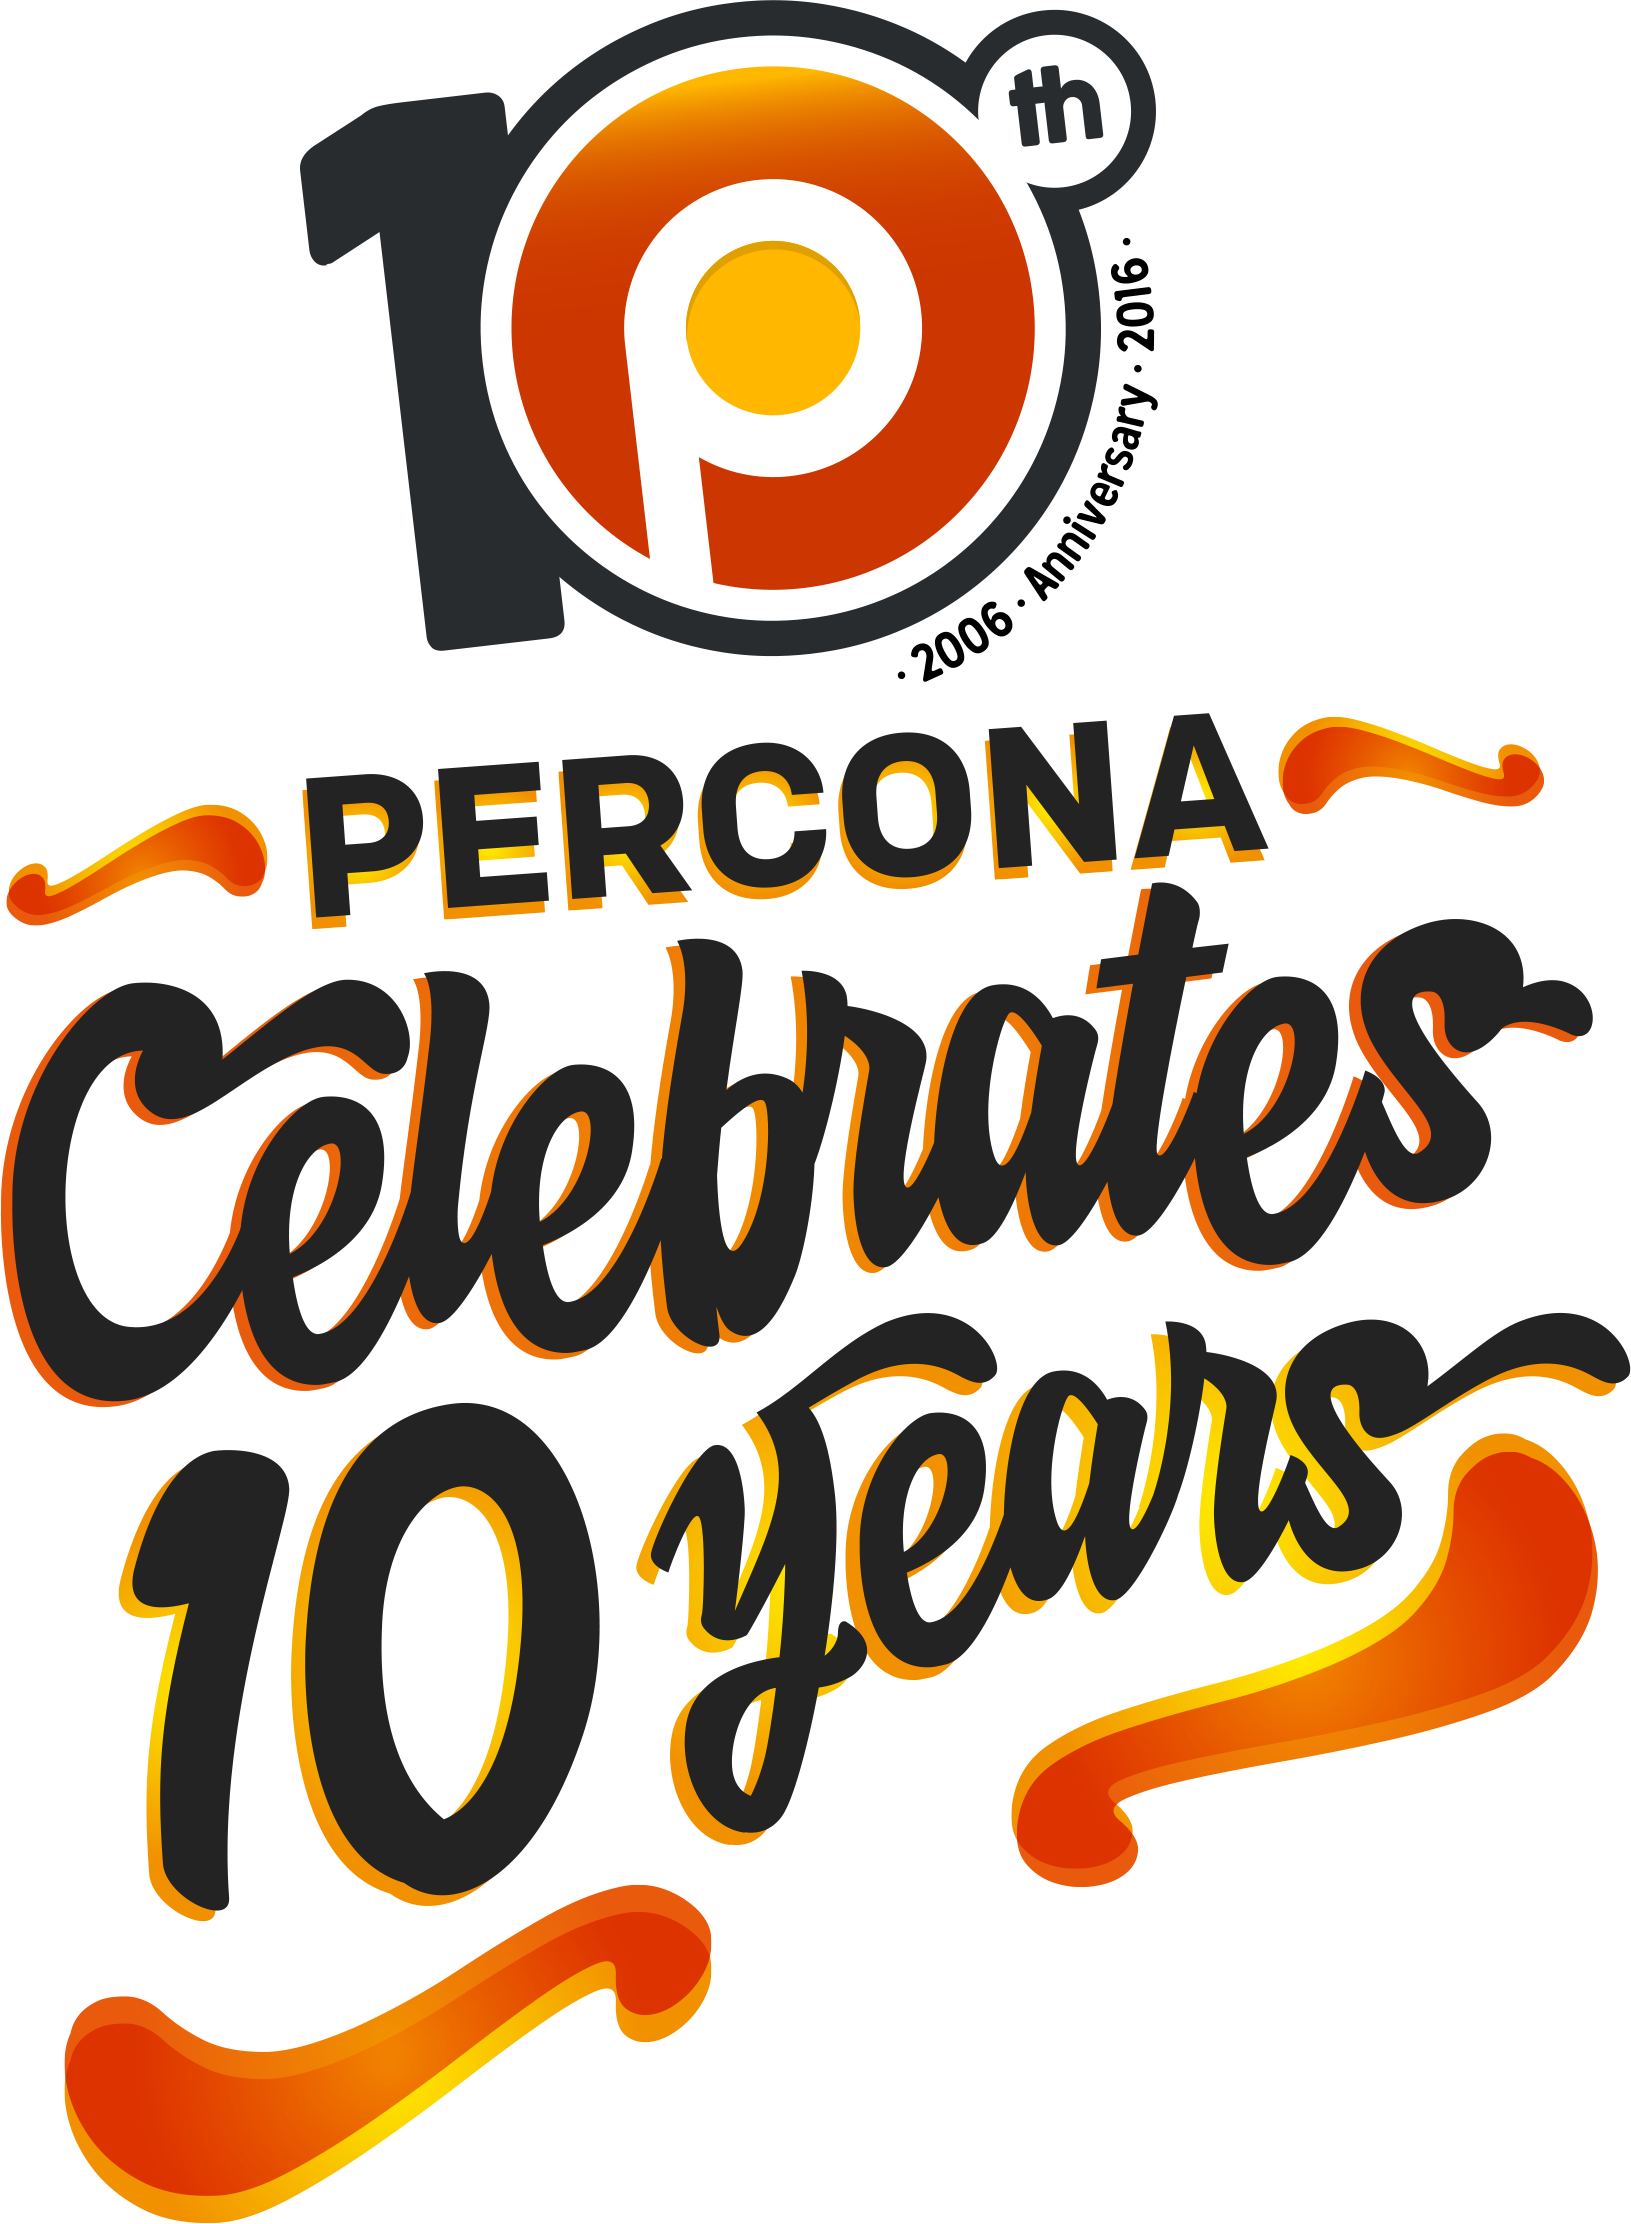 10th Anniversary Percona